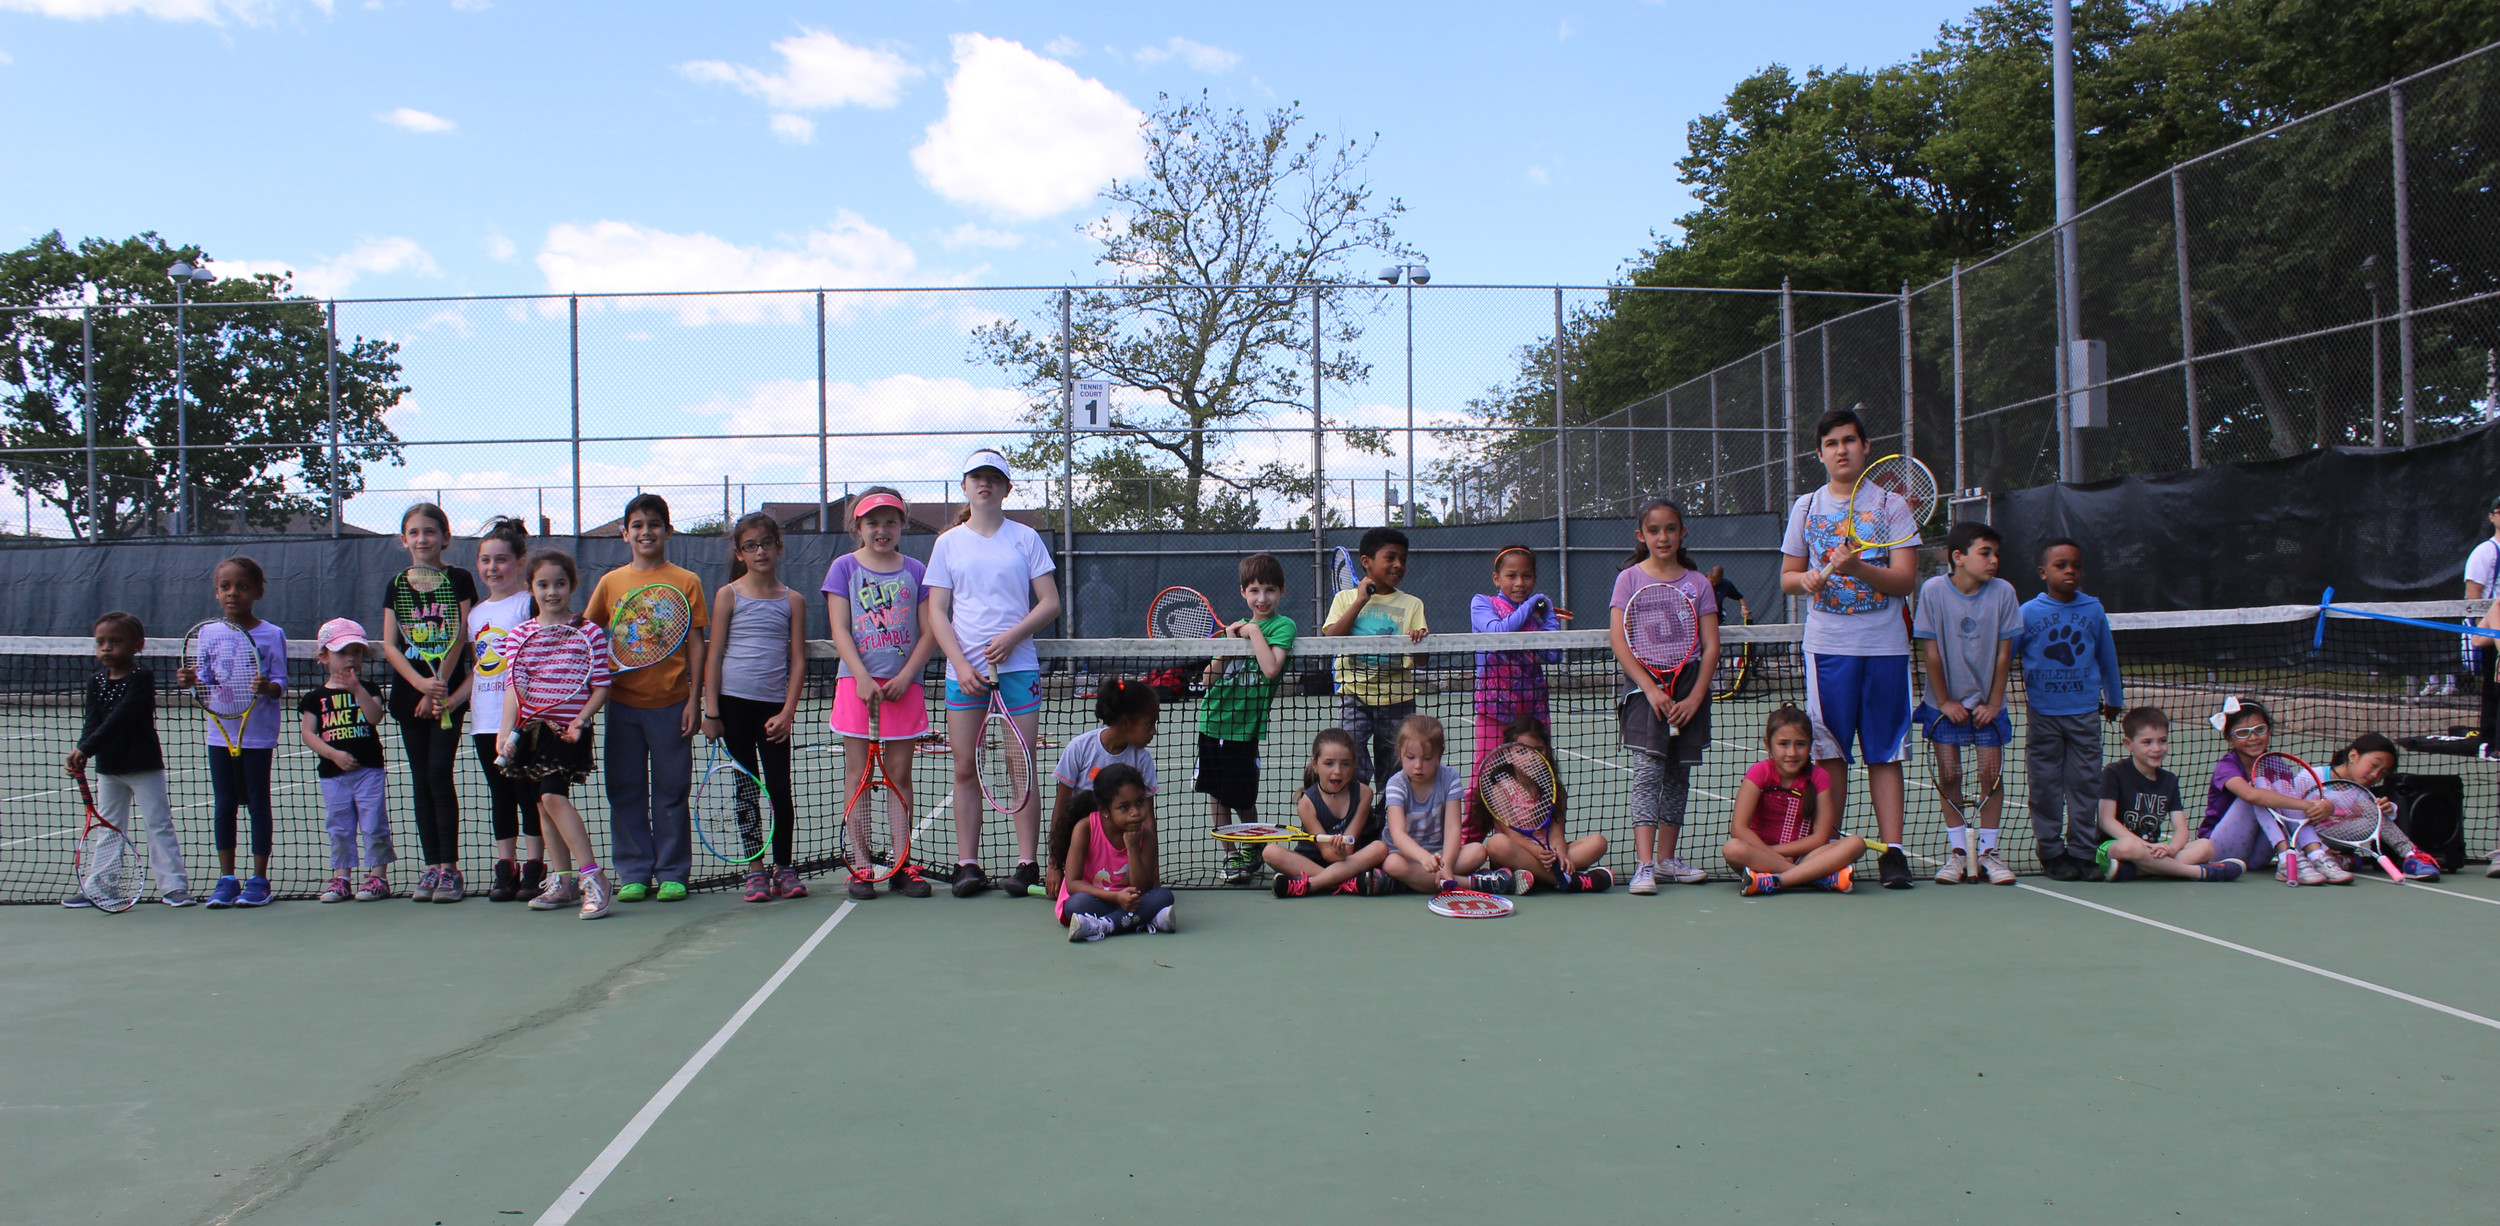 Children and families from across Nassau County learned to play tennis under the instruction of Fabiana Rezak, a Merrick resident and longtime U.S. Tennis Association volunteer.